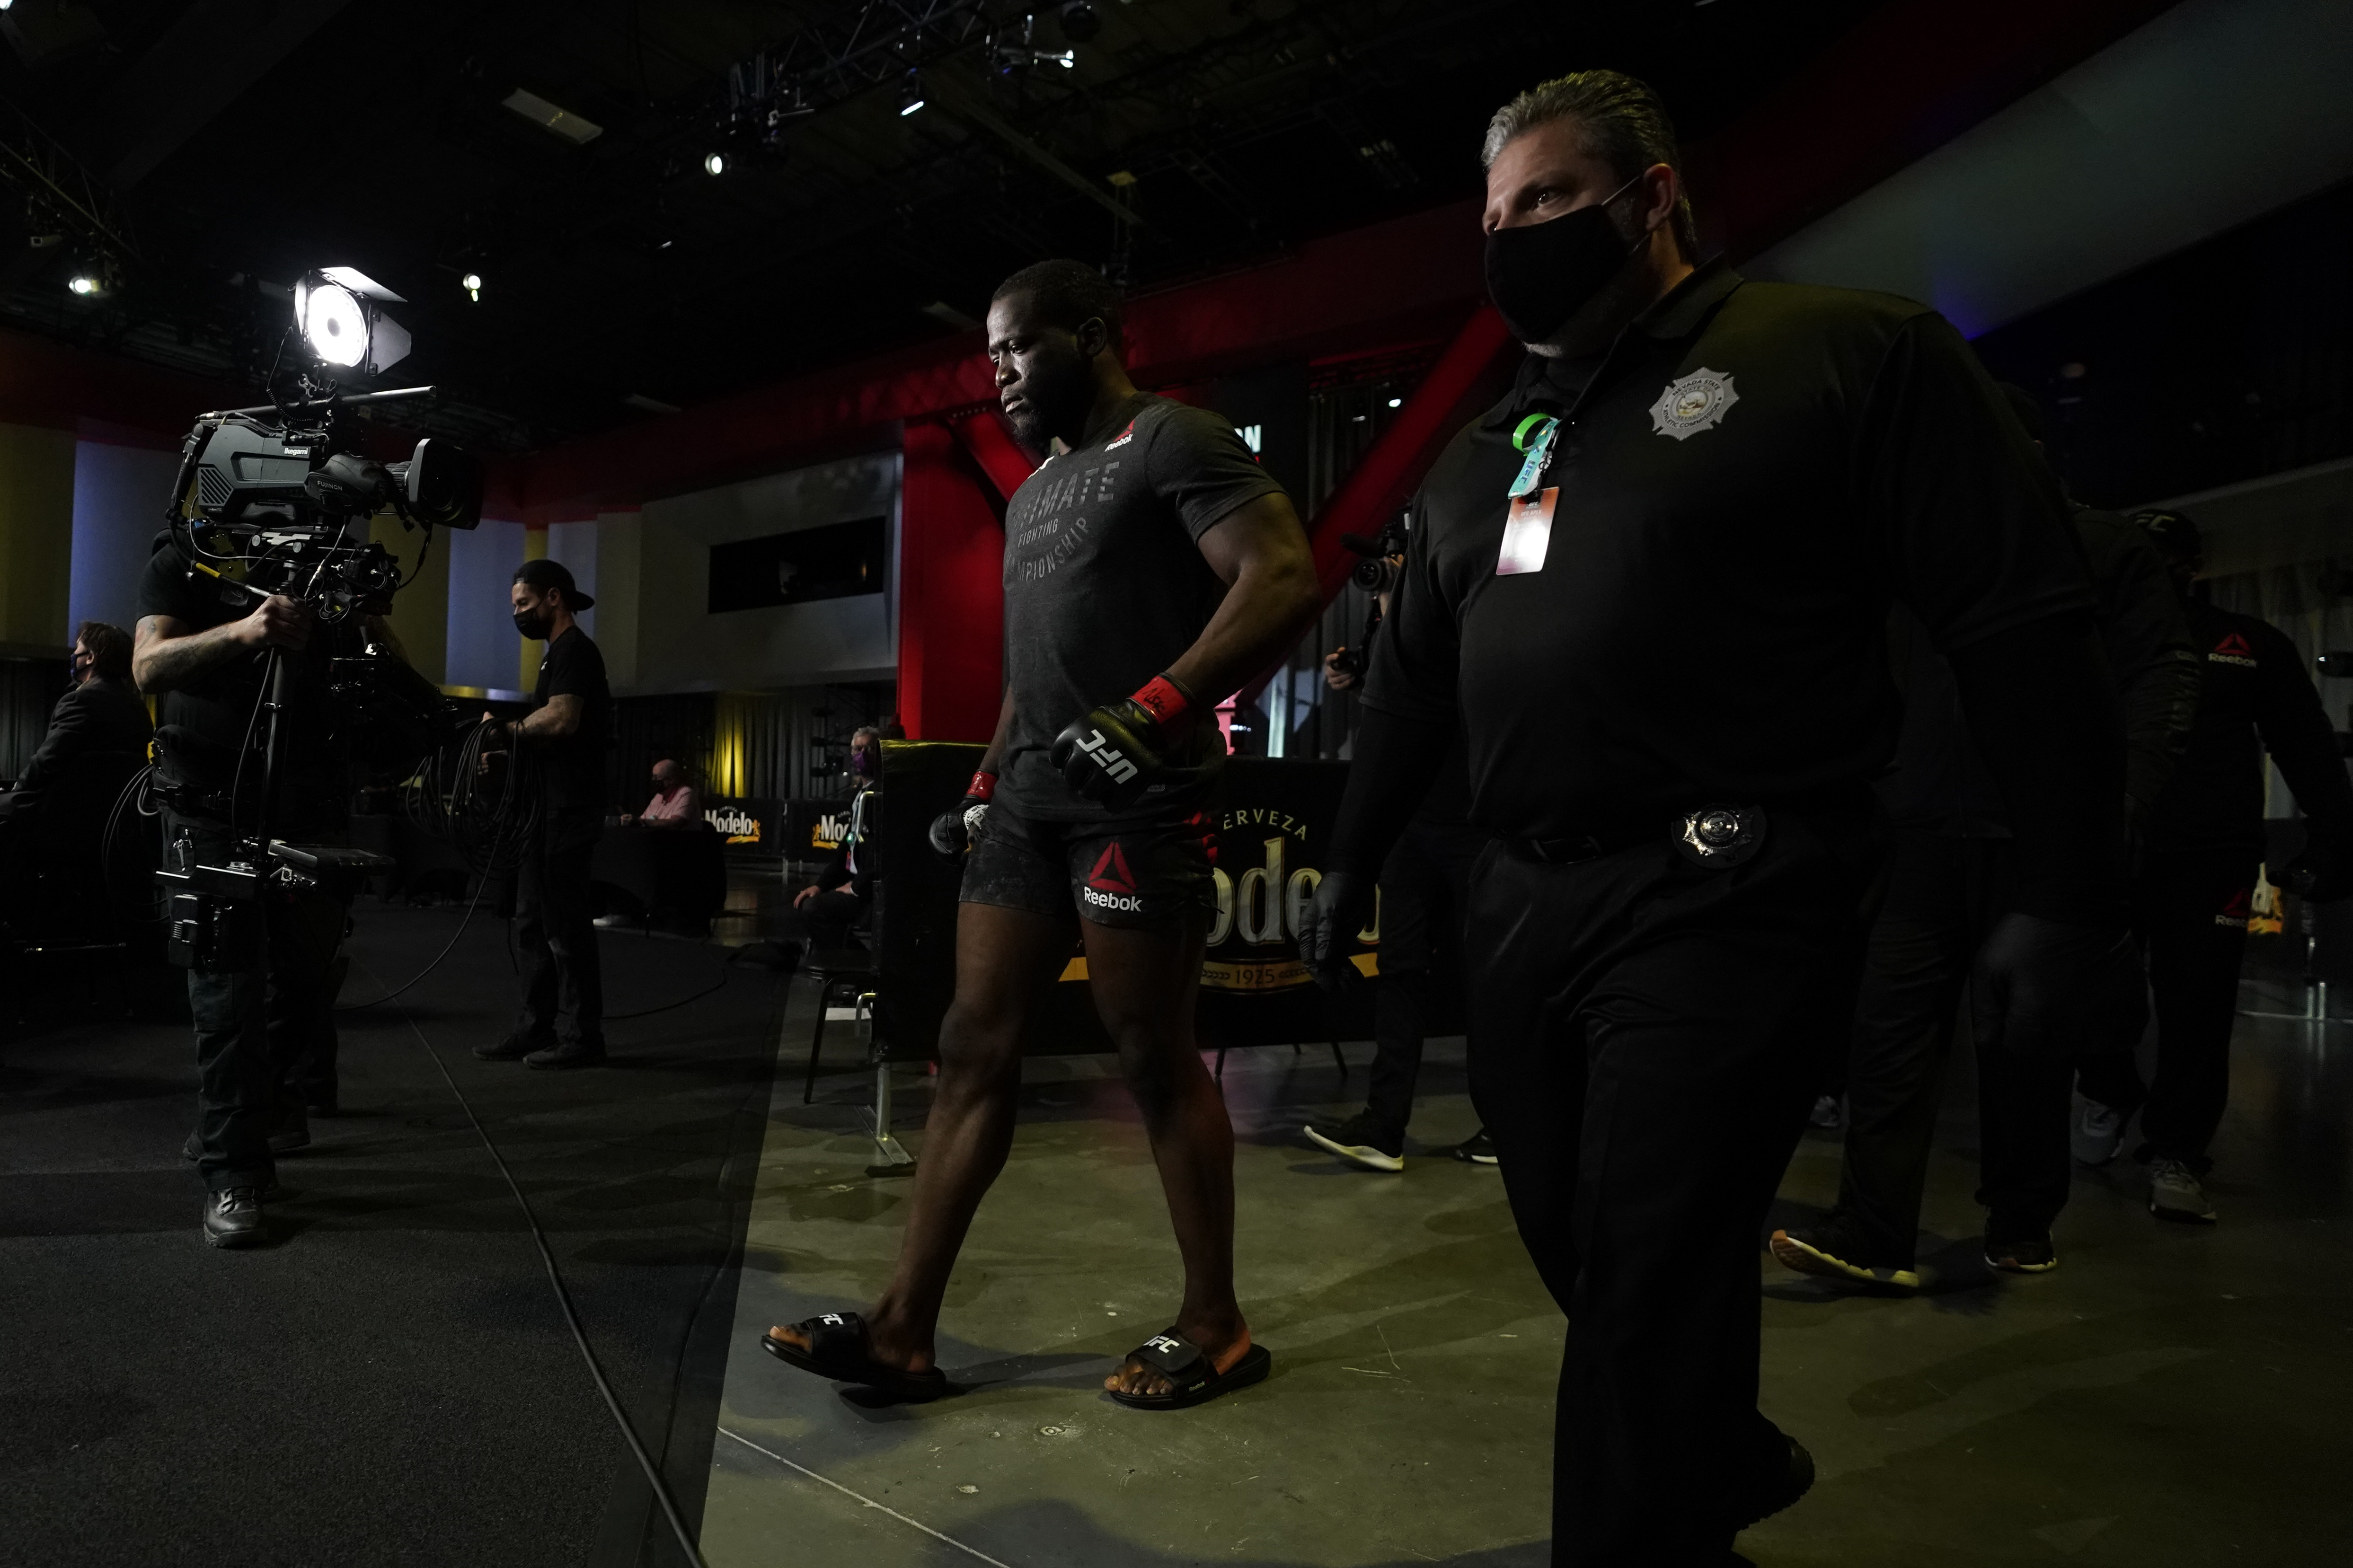 Tafon Nchukwi of Cameroon makes the walk to the Octagon before his middleweight bout against Jamie Pickett during the UFC Fight Night event at UFC APEX on December 19, 2020 in Las Vegas, Nevada. (Photo by Cooper Neill/Zuffa LLC)